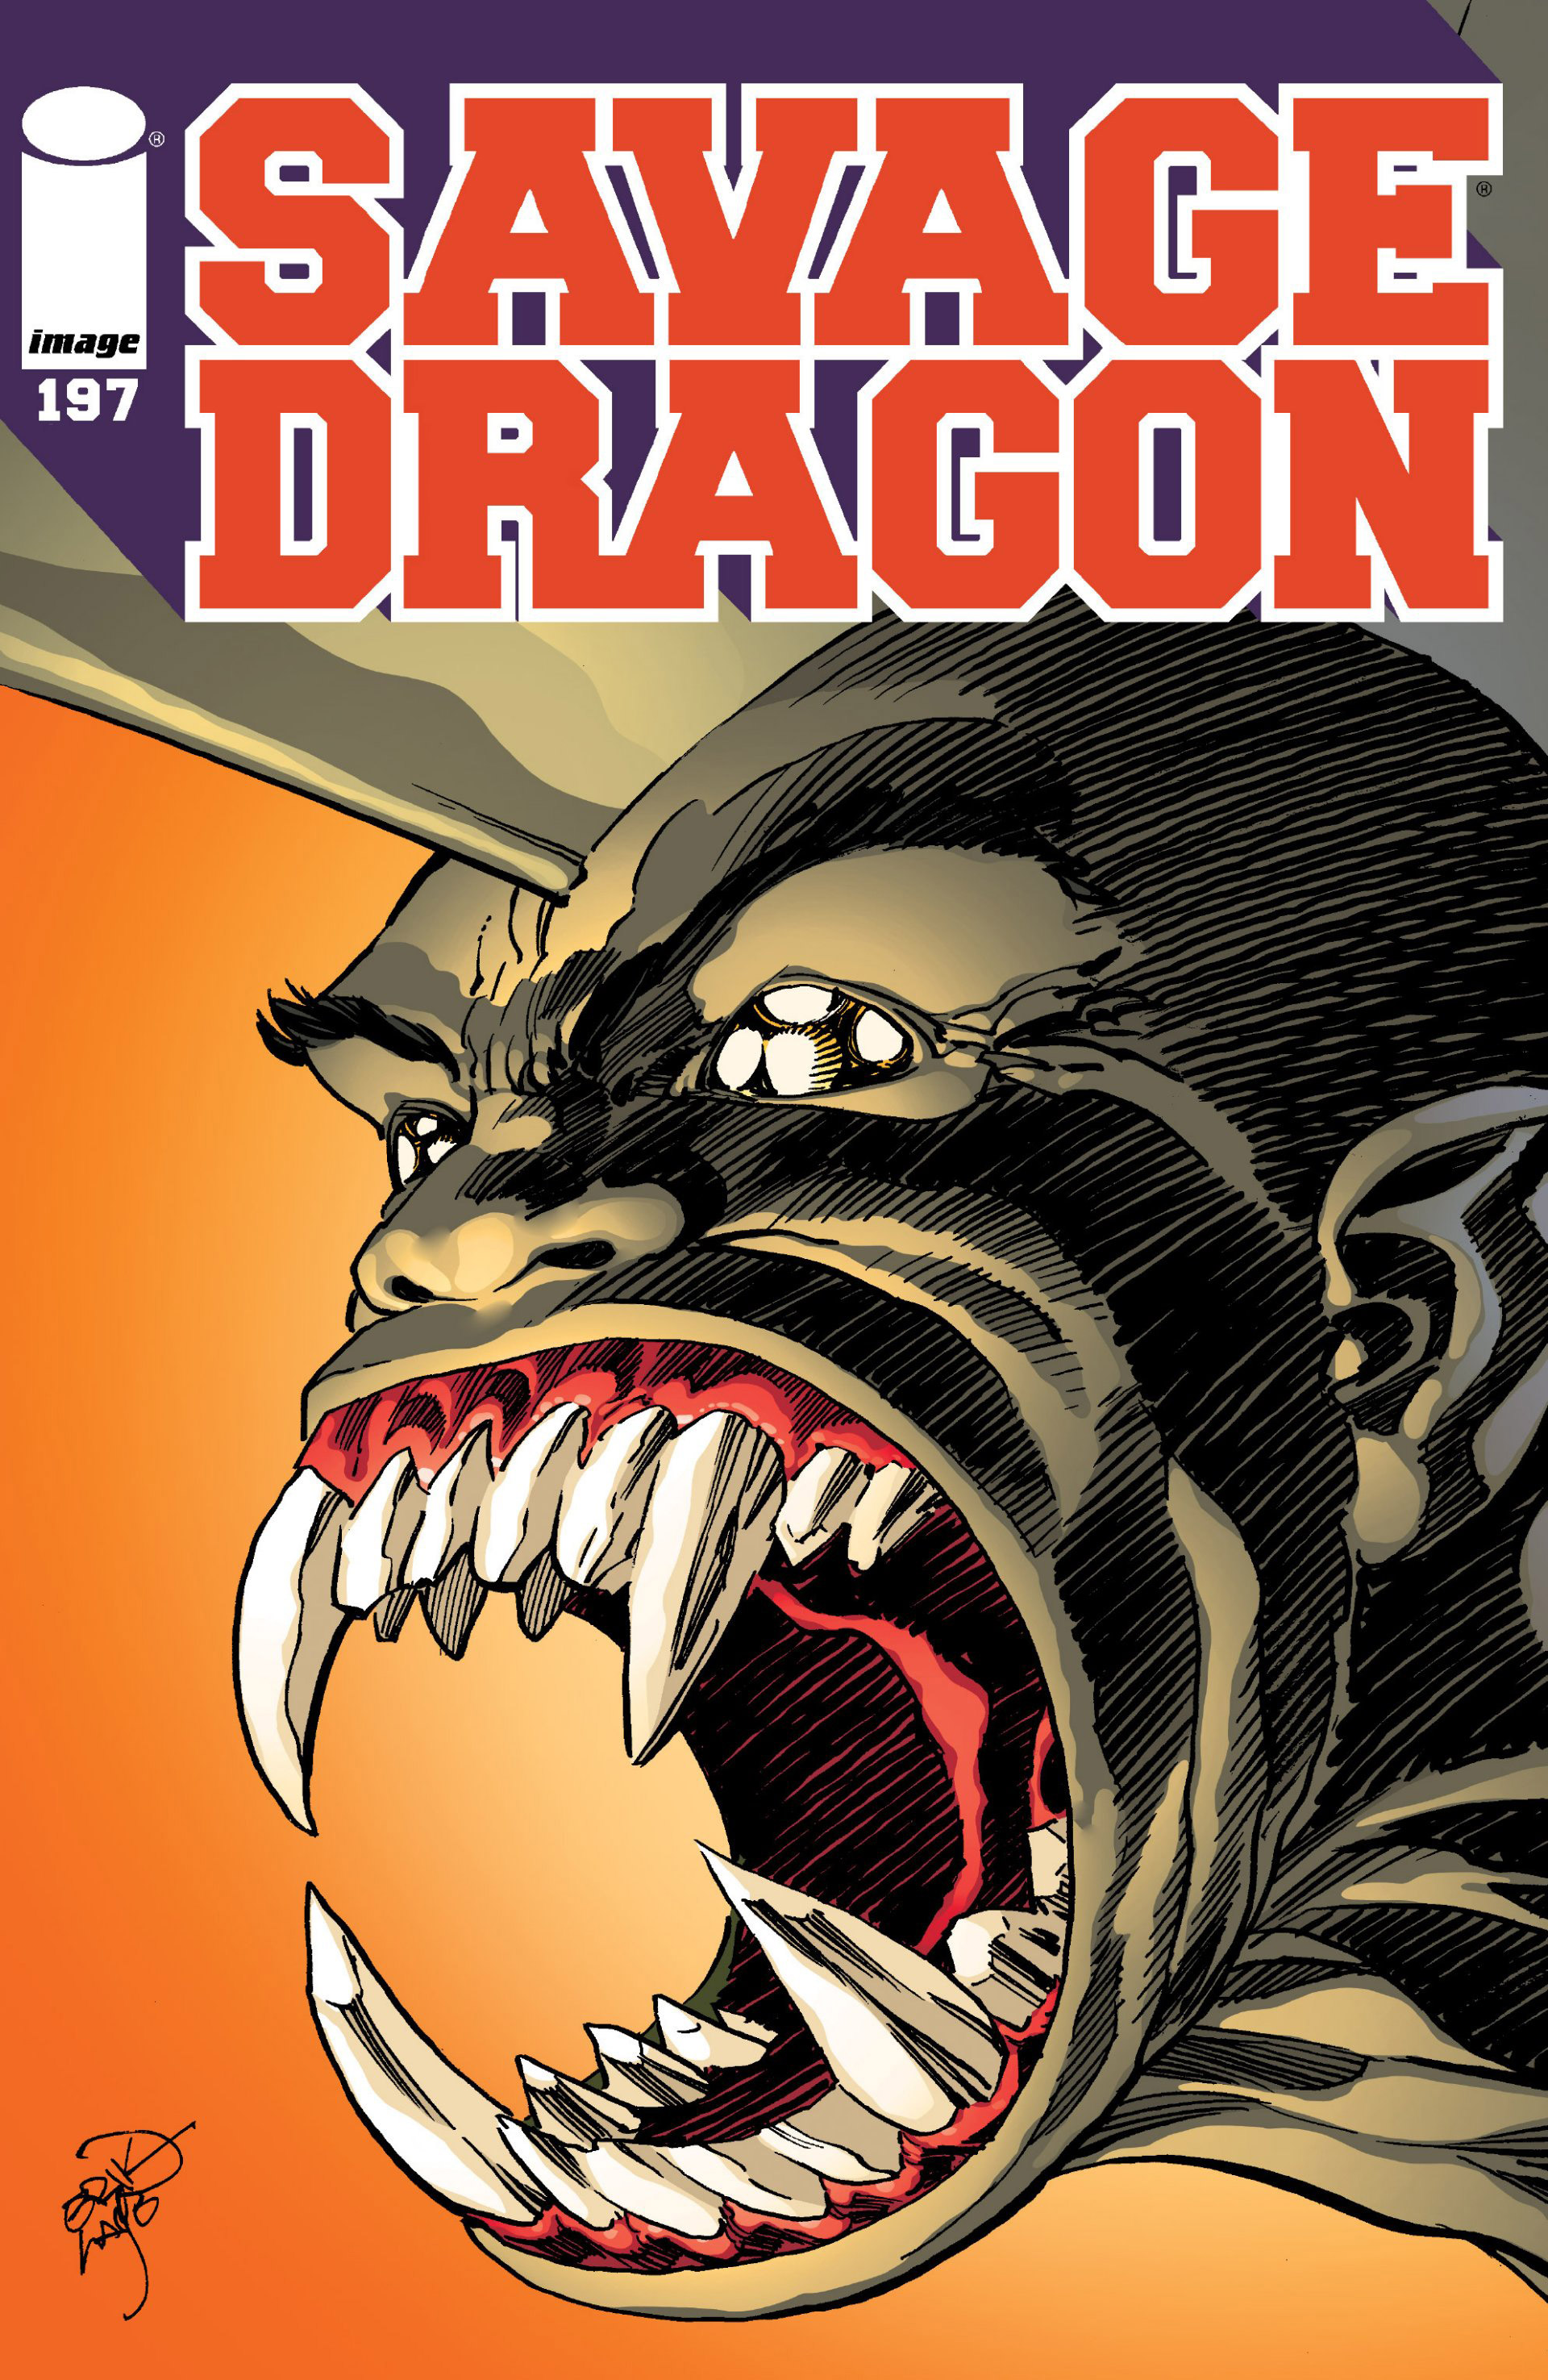 Cover Savage Dragon Vol.2 #197